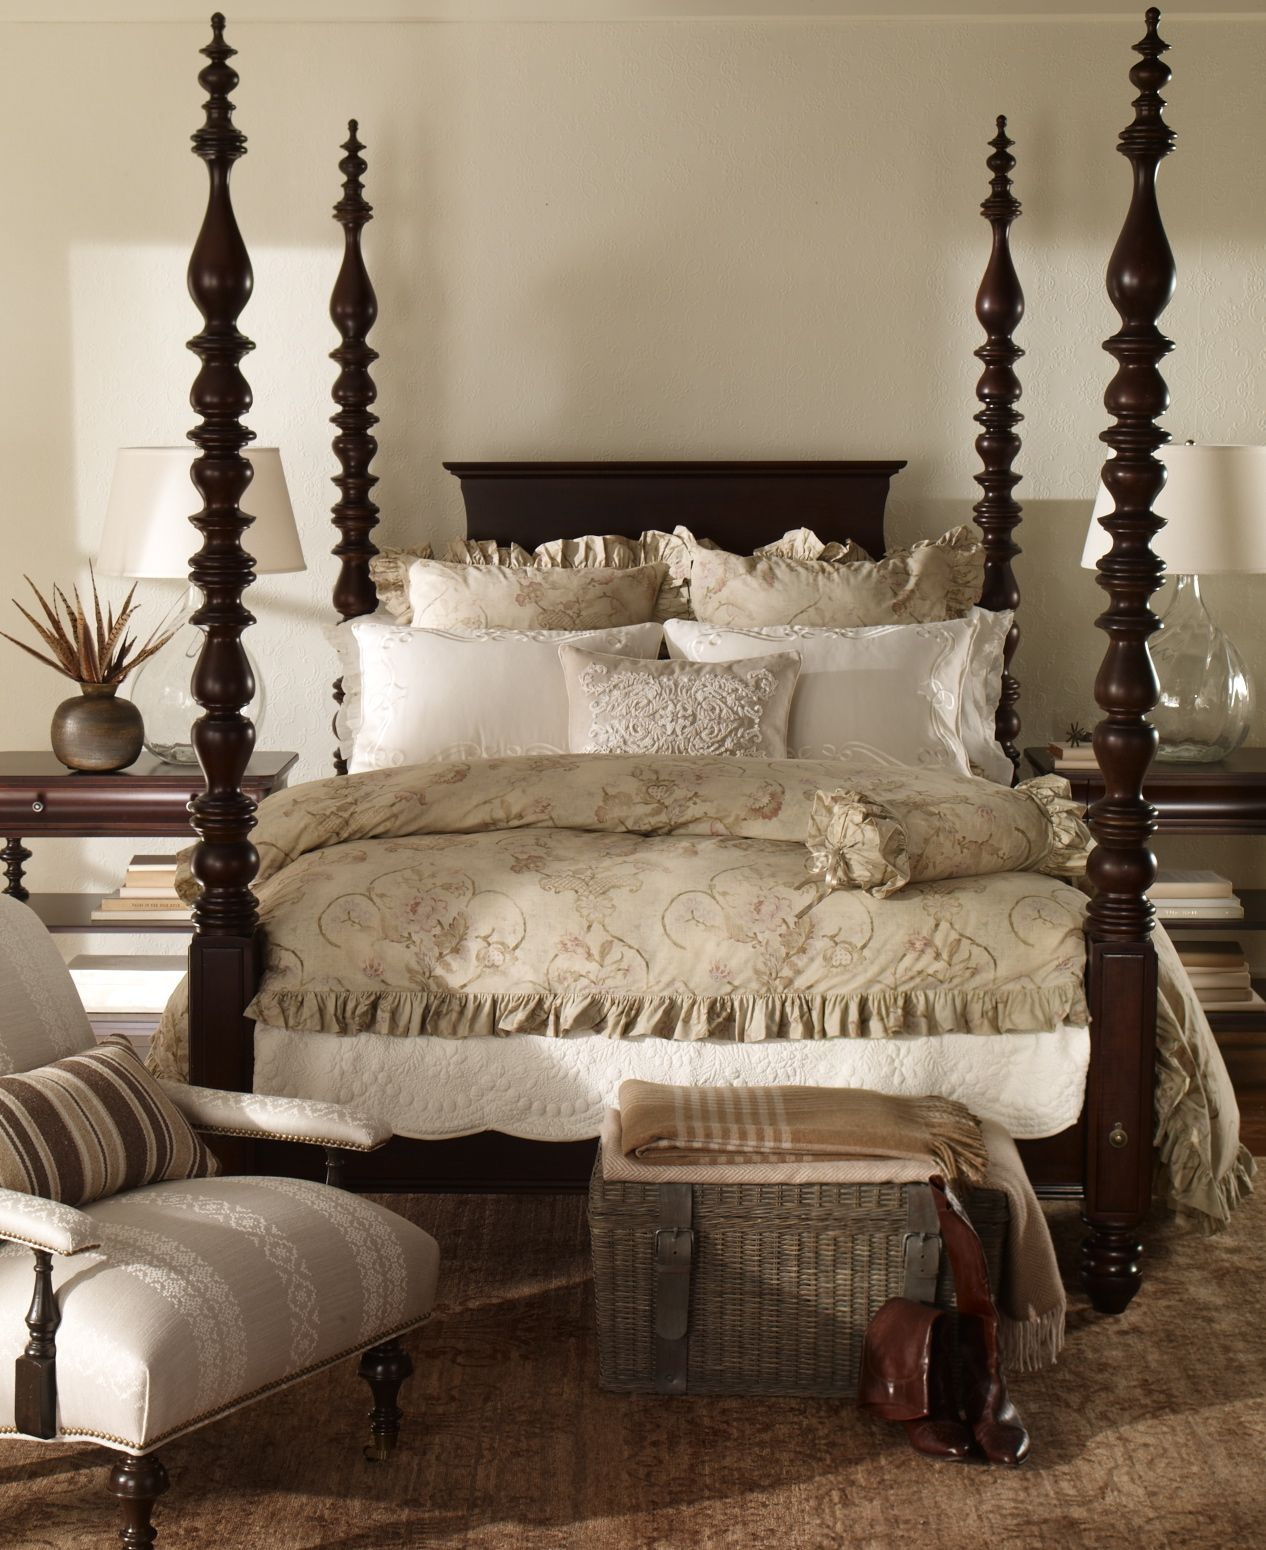 The Turner bed is turned out in a assortment of